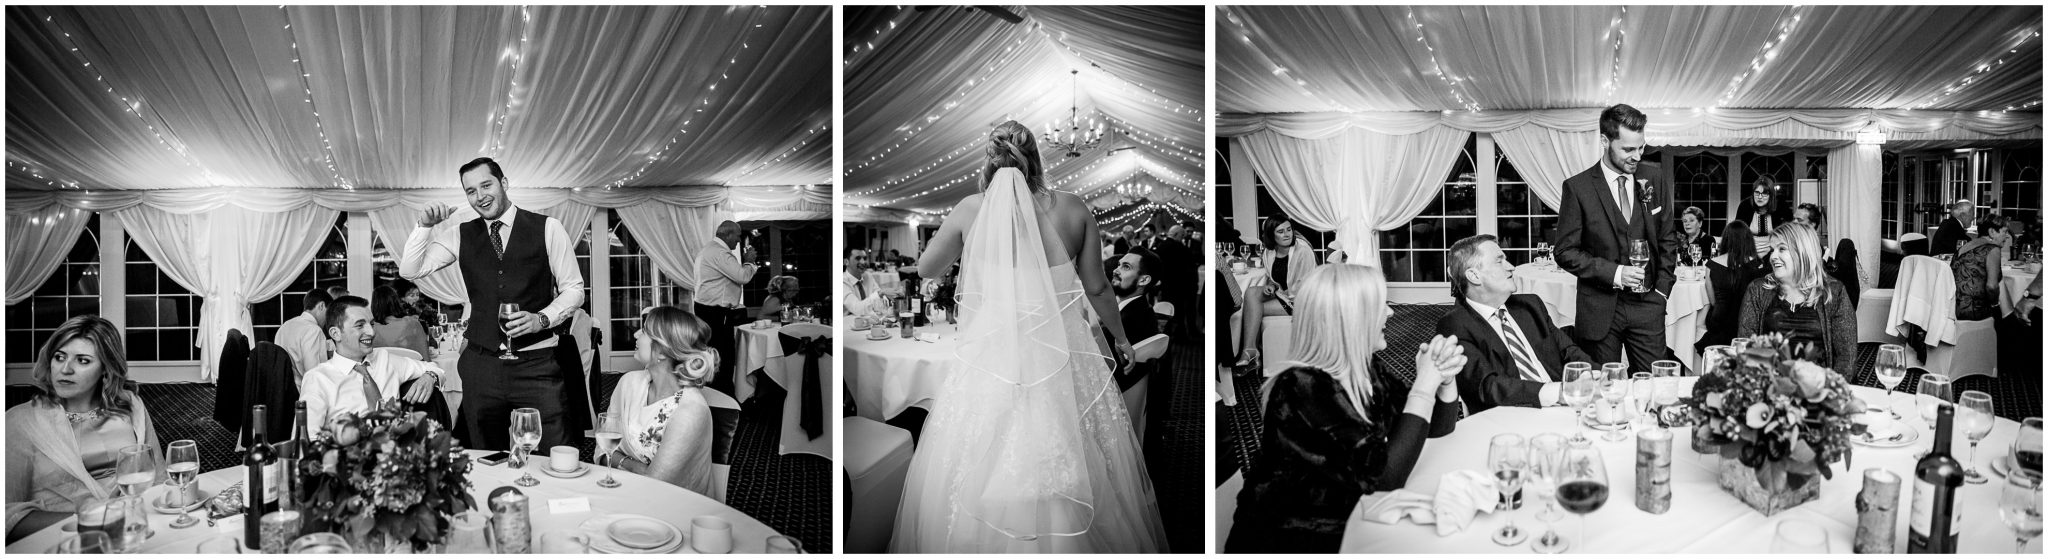 Audleys Wood wedding photograhy evening reception